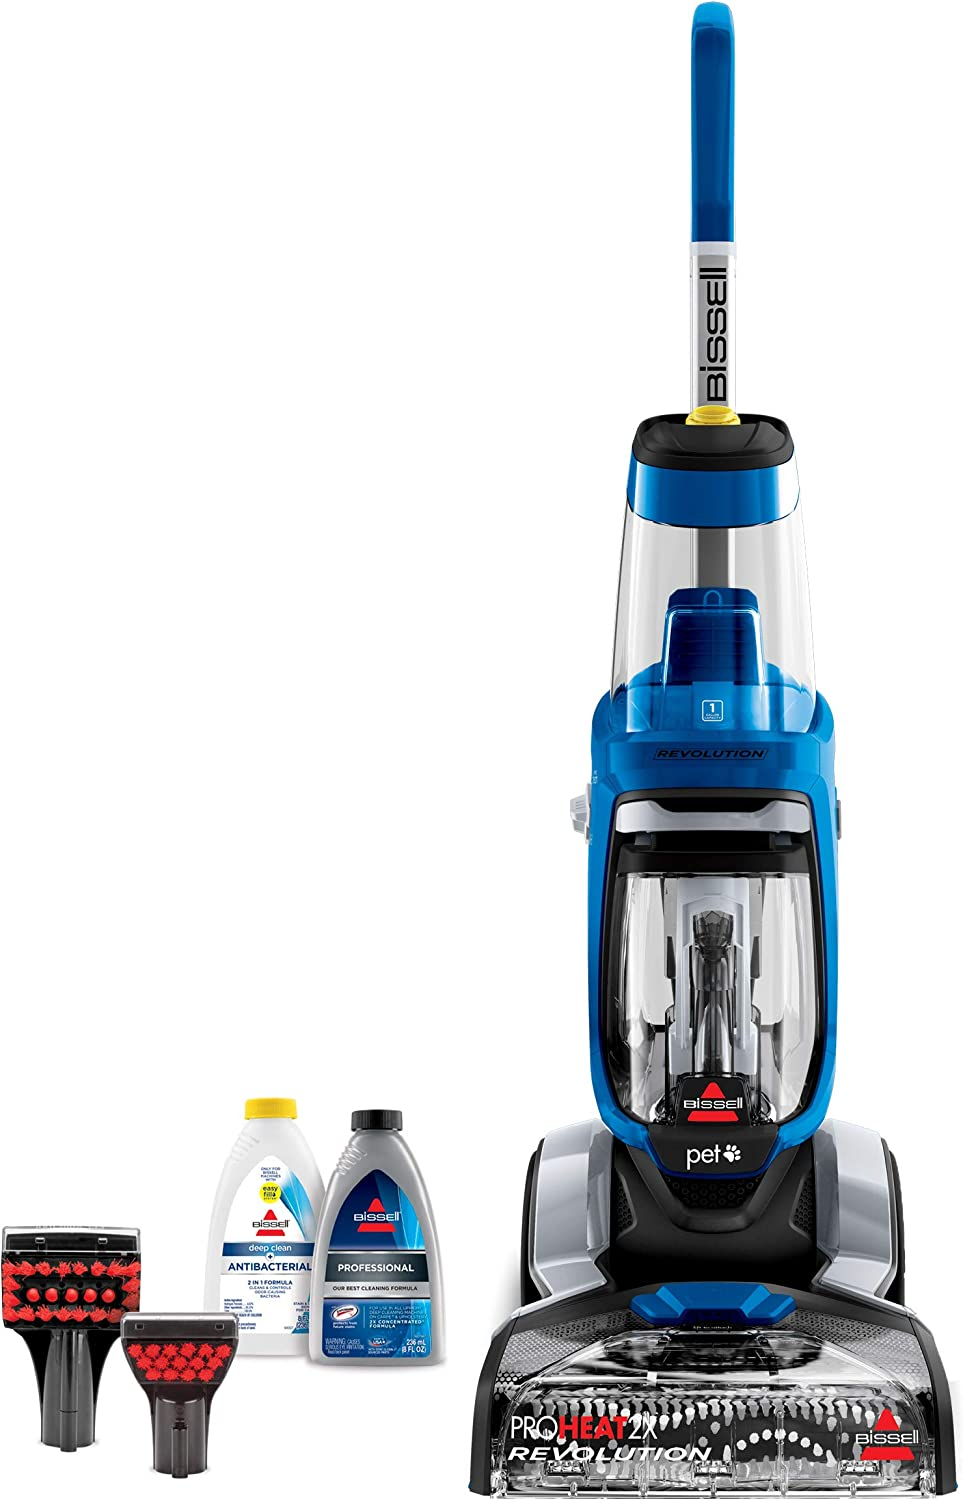 BISSELL ProHeat 2X Revolution Pet Full Size Upright Carpet Cleaner, 15489, Blue